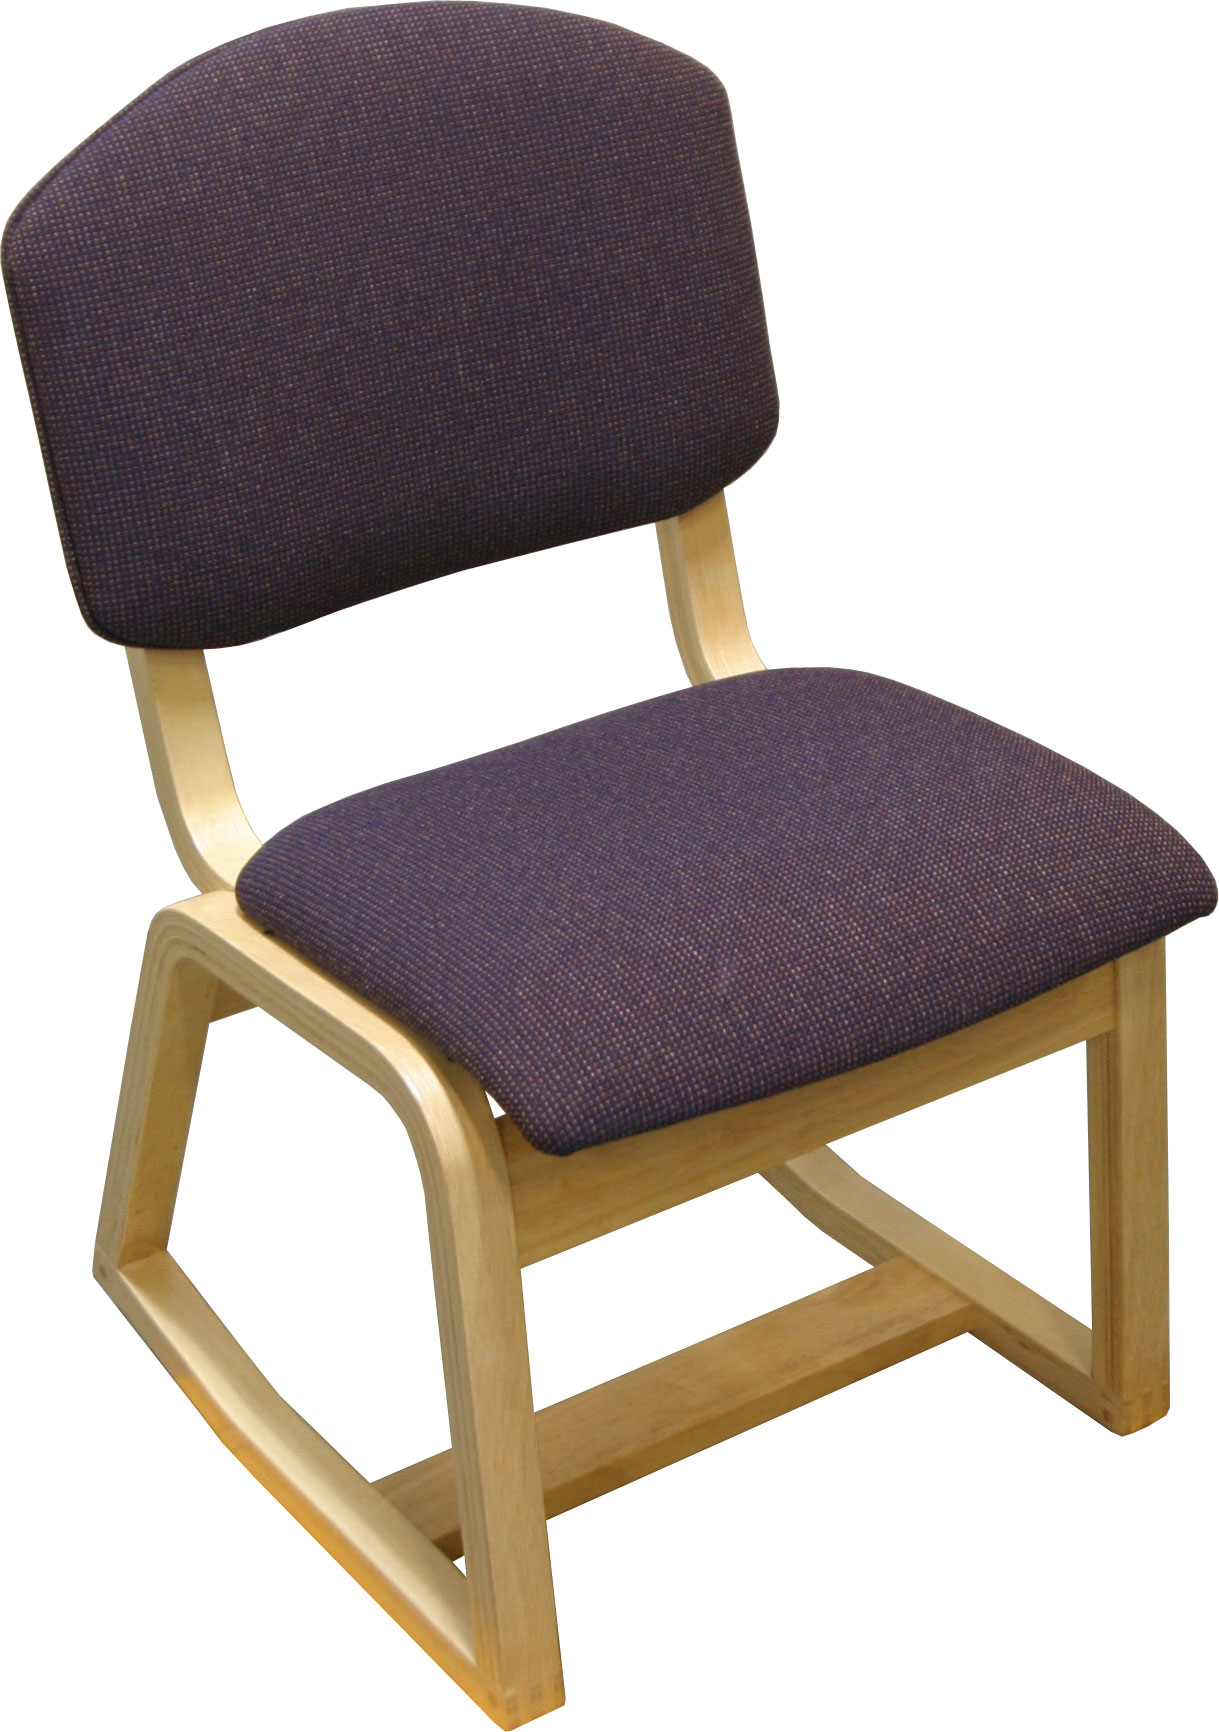 2 Position Chair